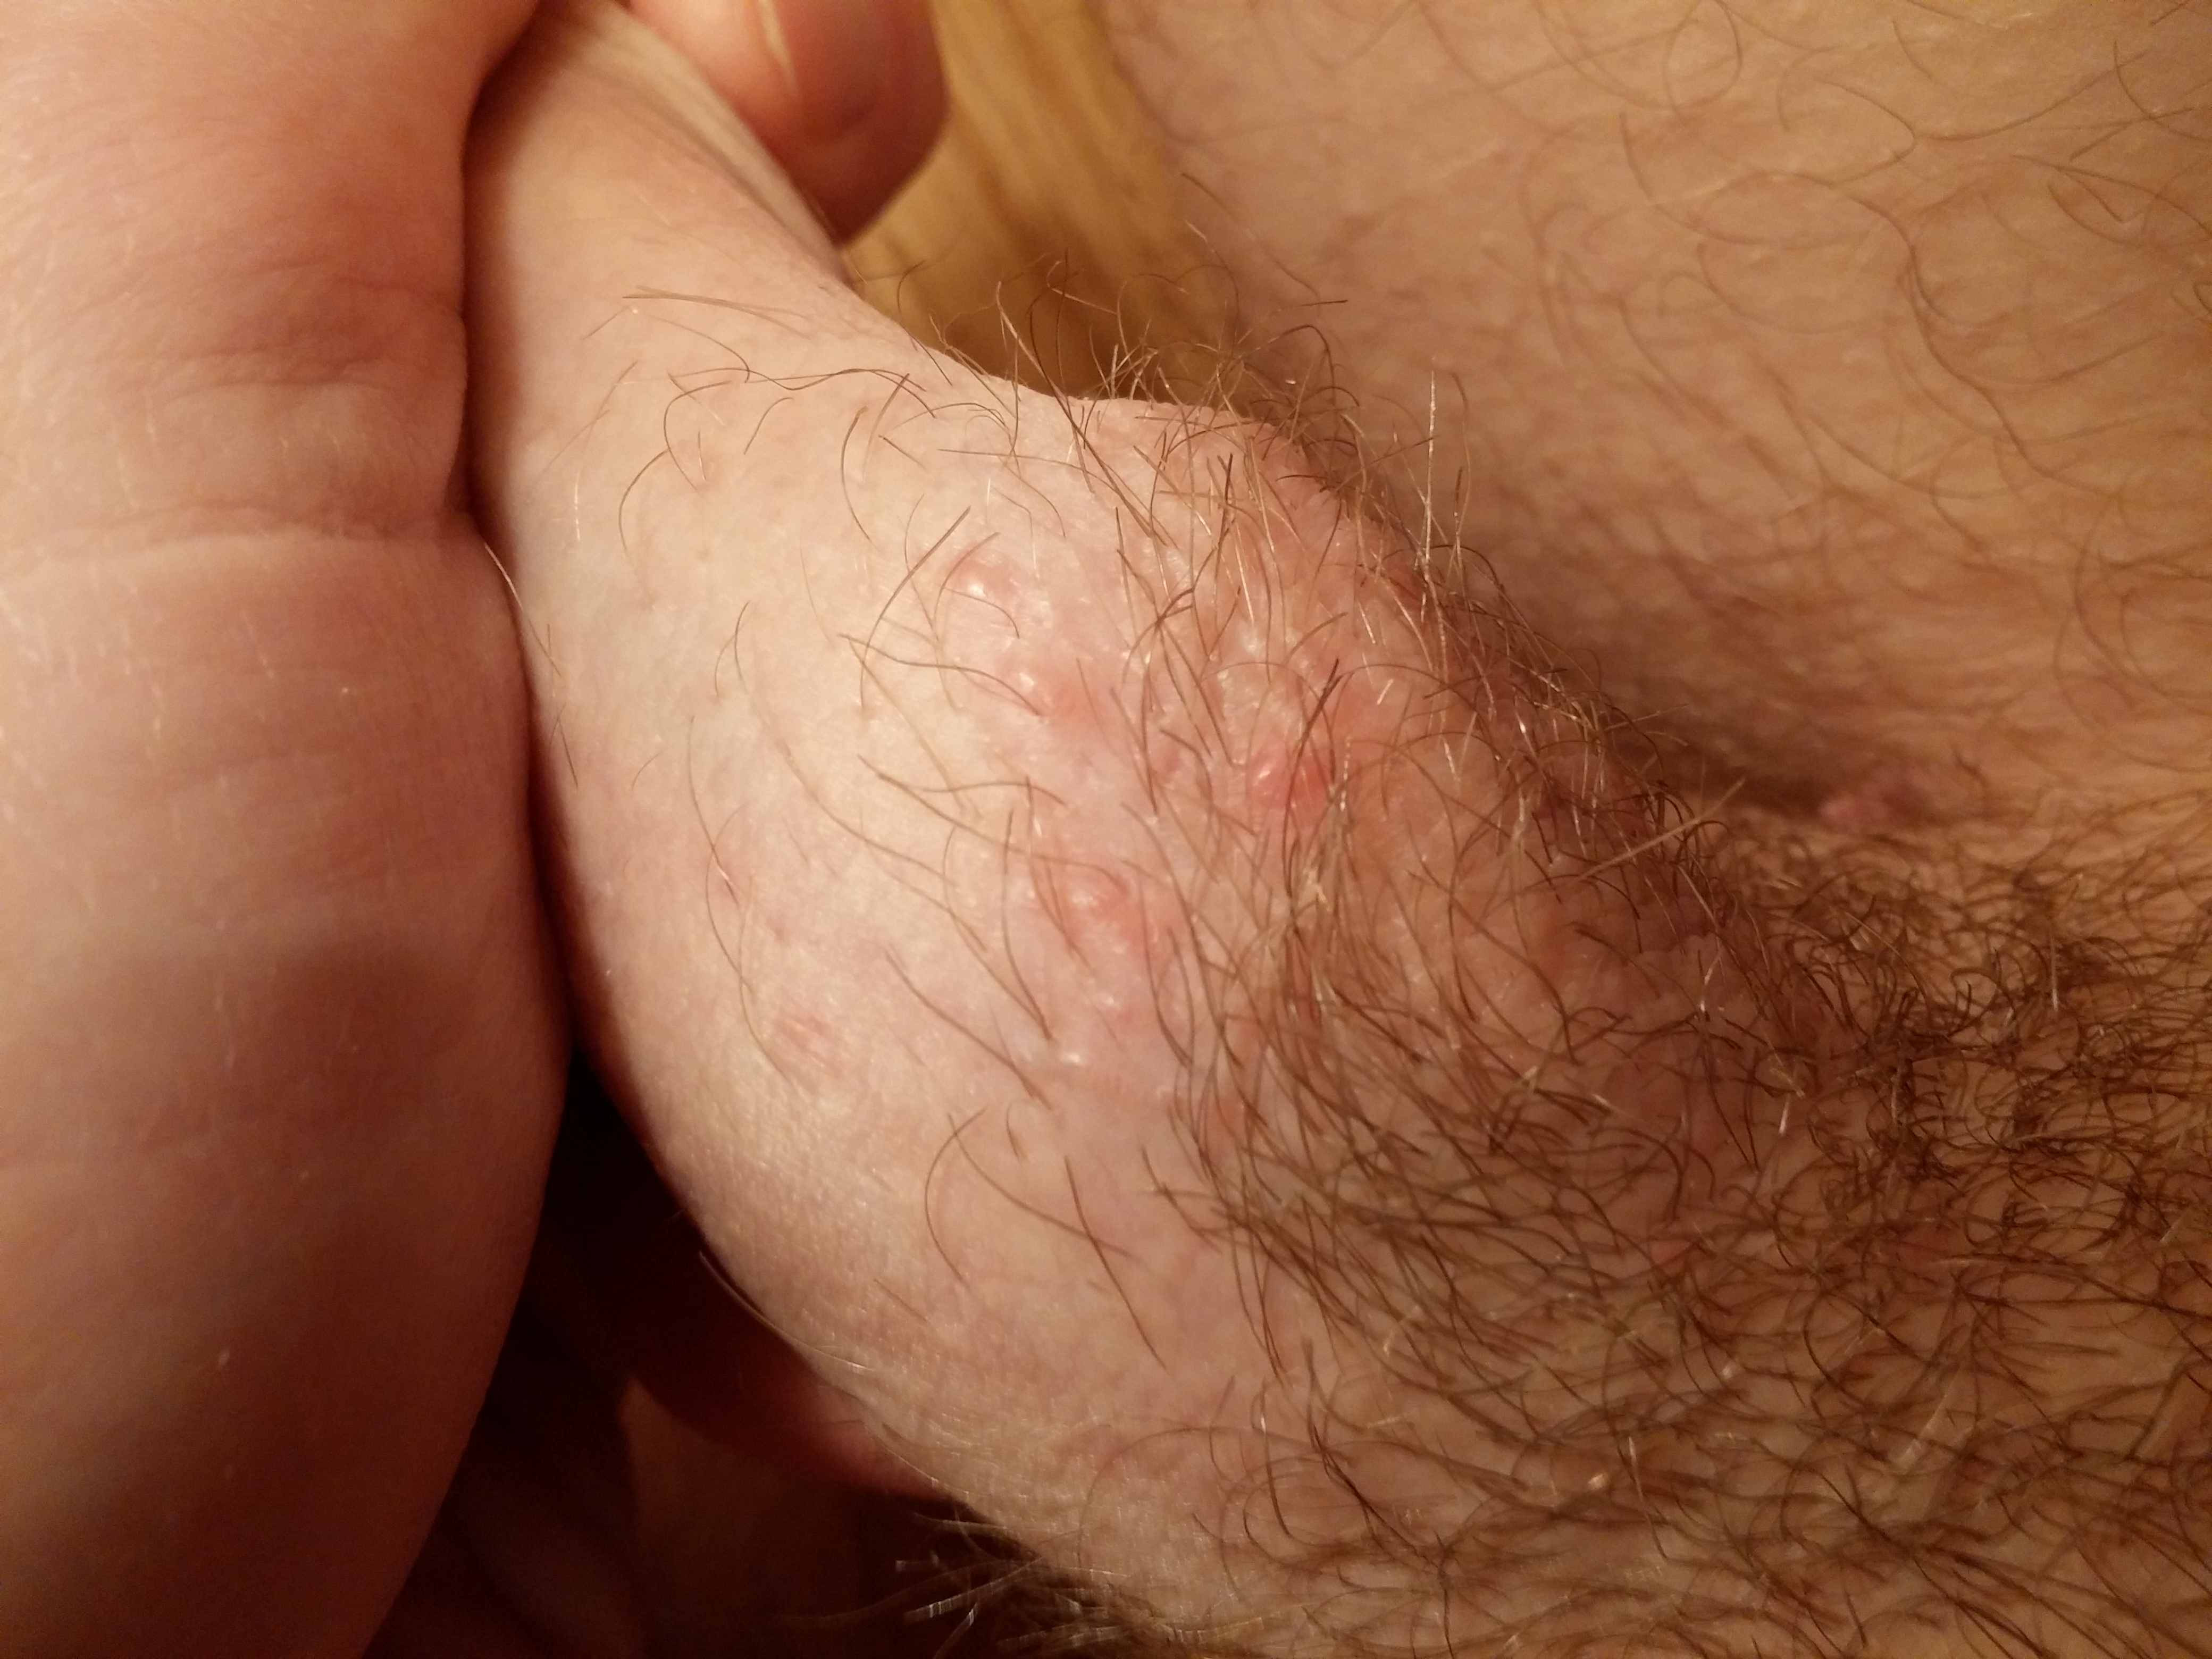 puss filled small dots on penis